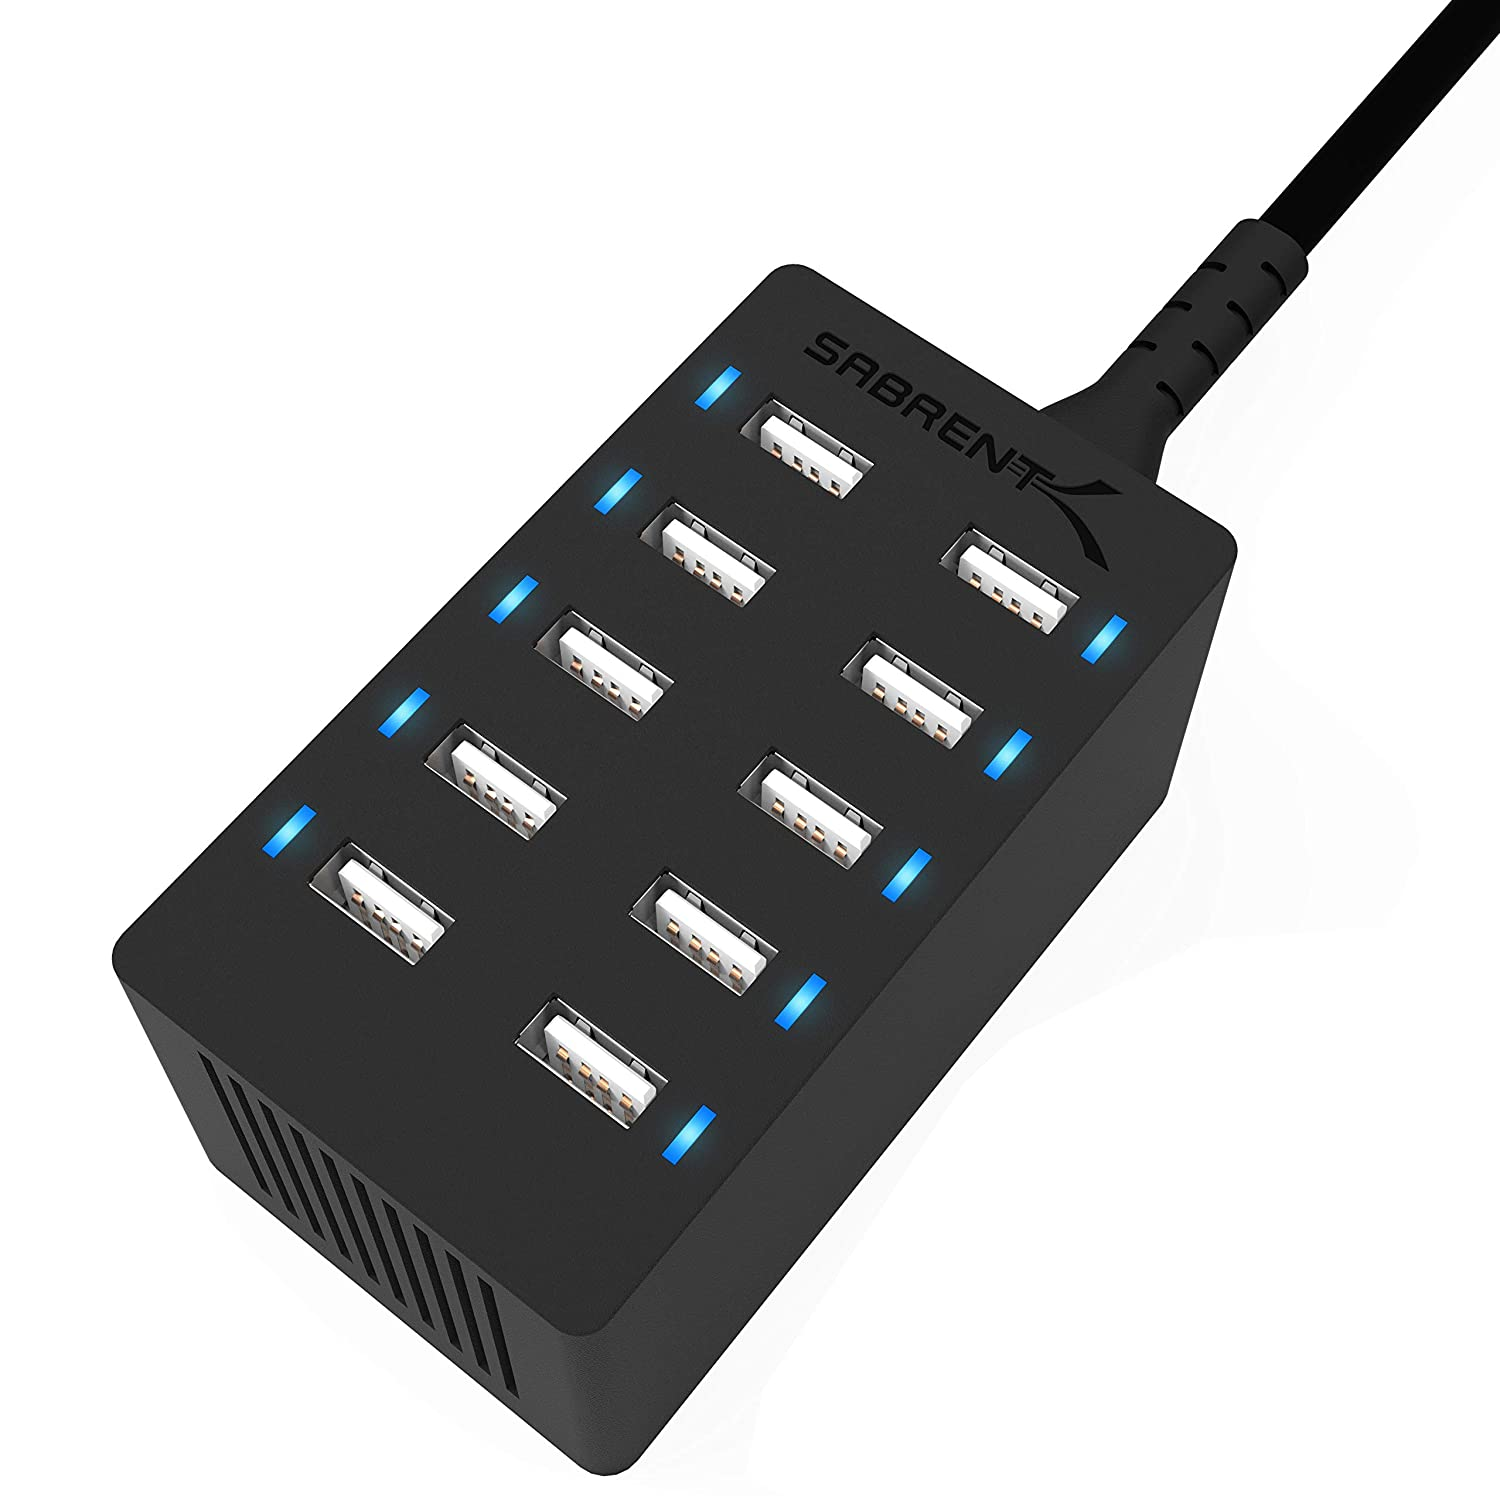 Sabrent 10-Port Family-Sized Desktop Rapid Charger, Smart USB Ports with Auto Detect Technology, Black (AX-TPCS)